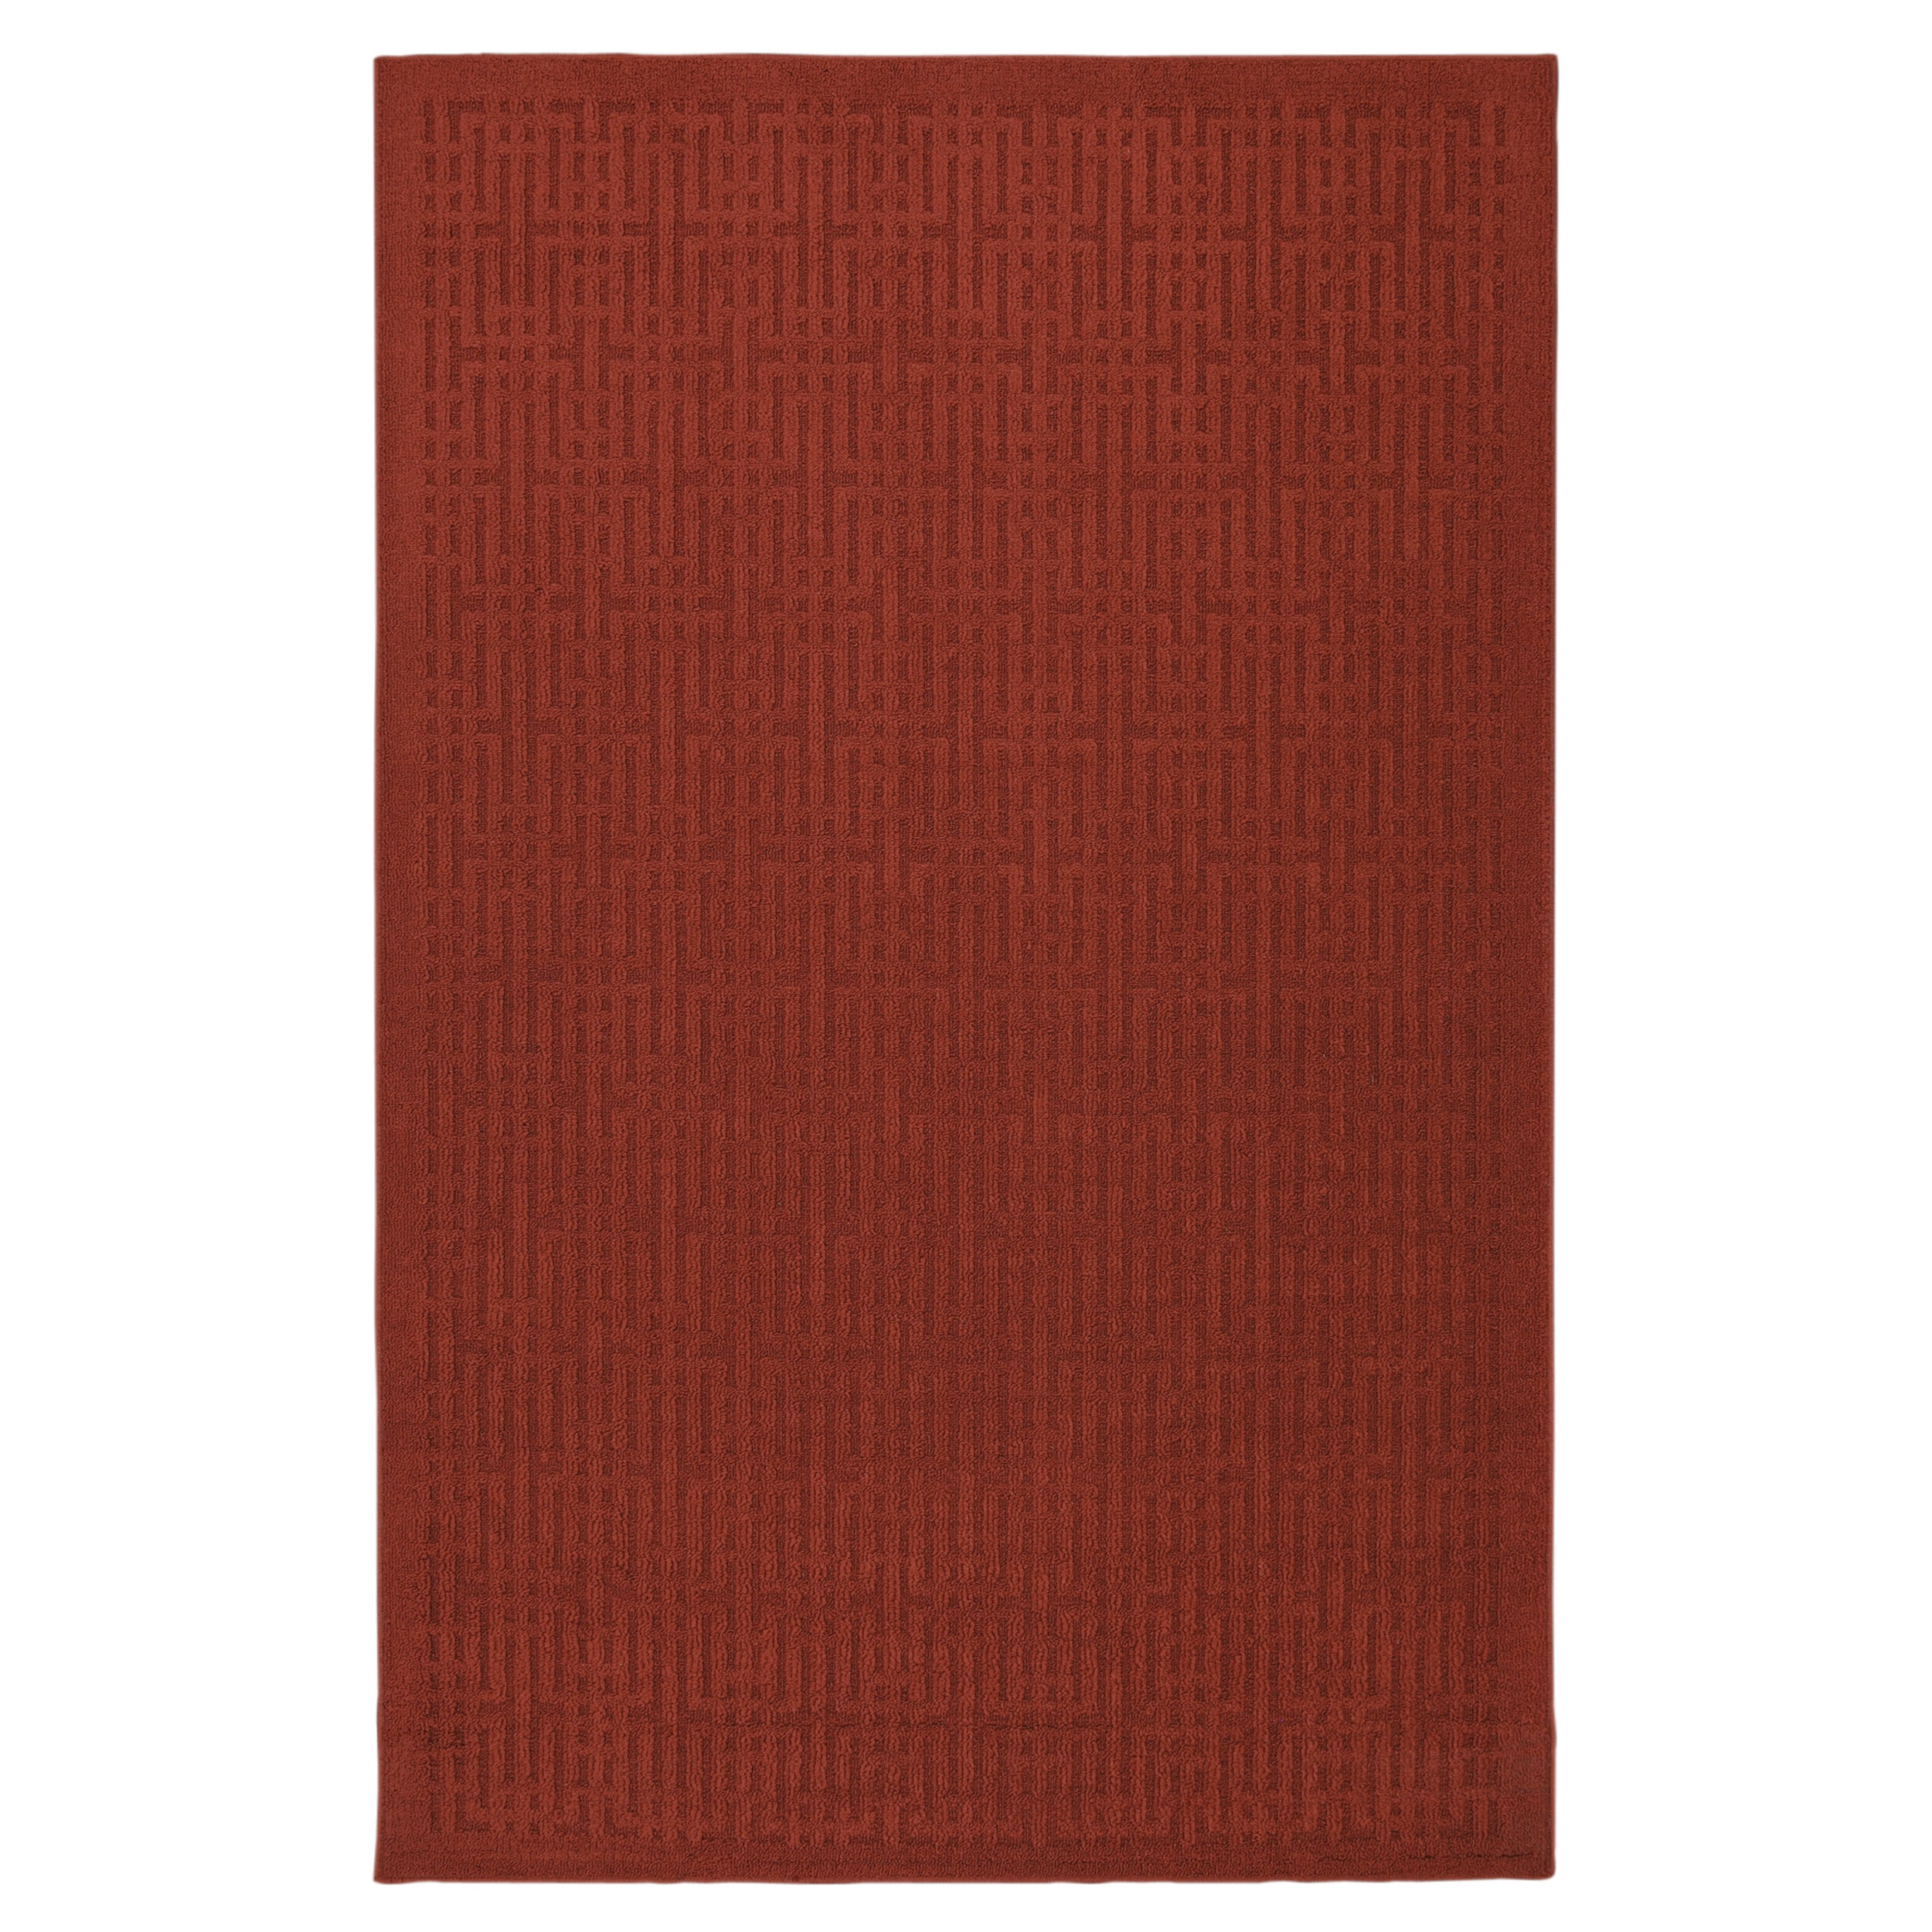 Stacks Madder Rusty Red Rug (5' x 7')